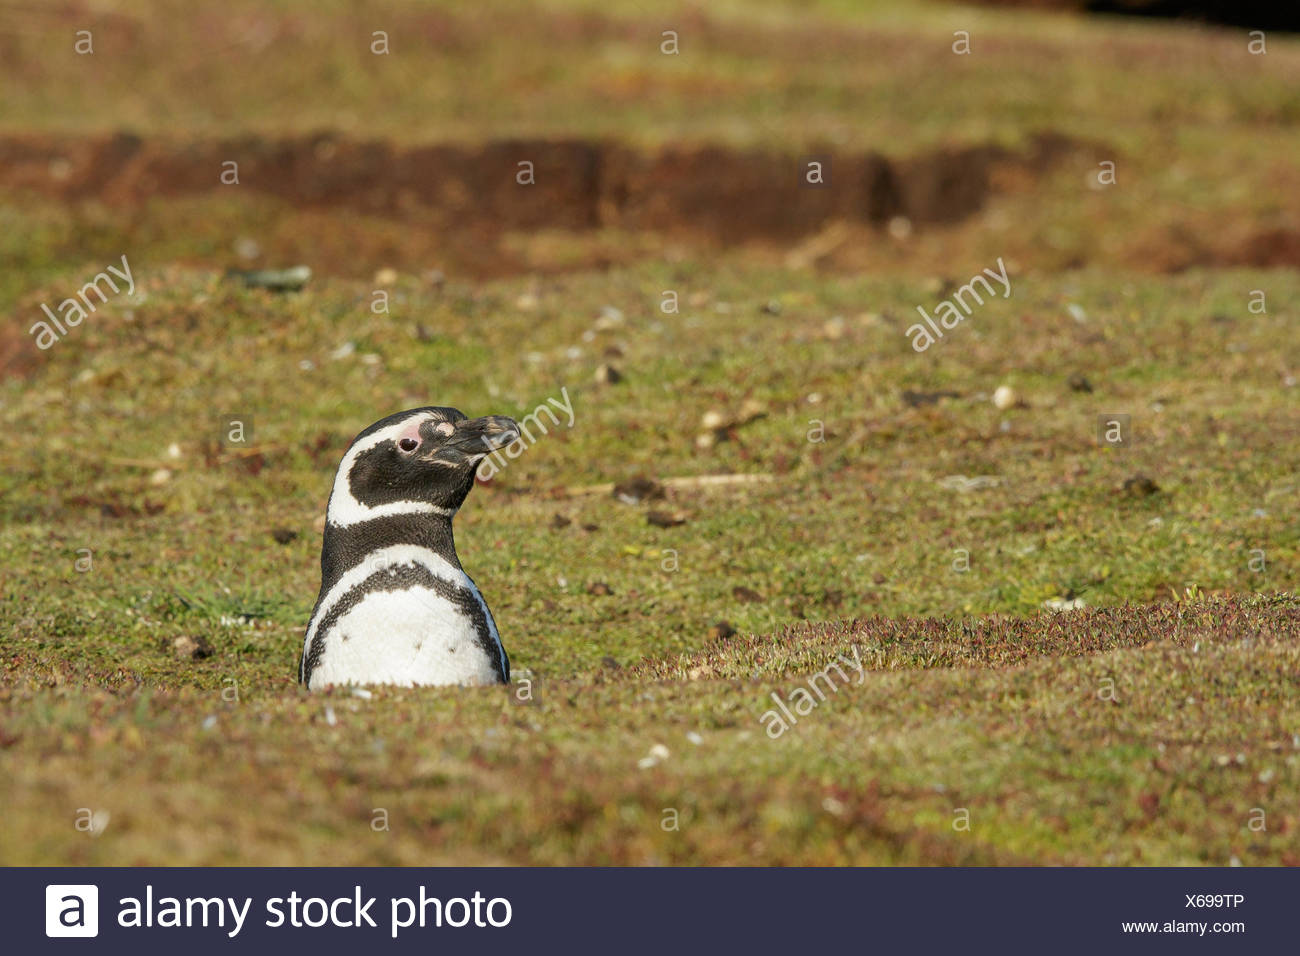 Magellanic Penguin (Spheniscus magellanicus) at its nesting colony in the Falkland Islands. - Stock Image